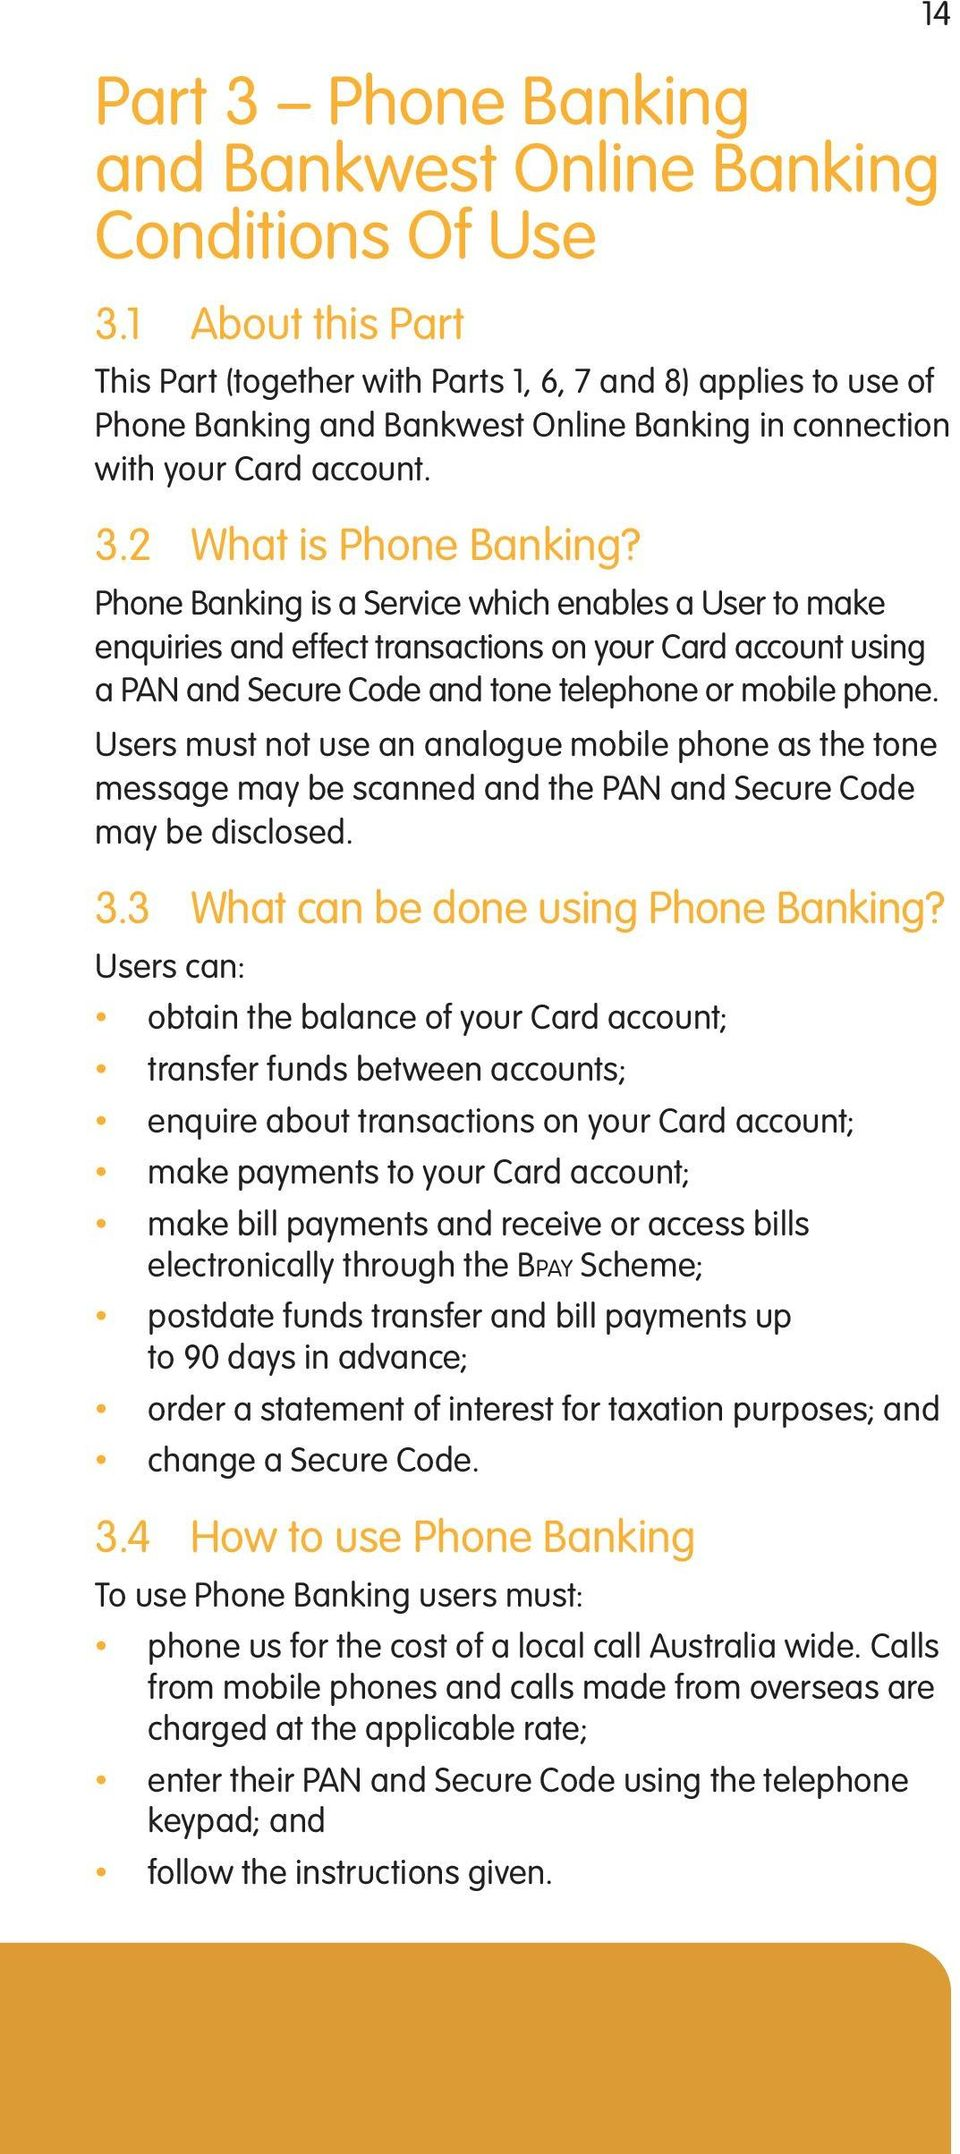 Phone Banking is a Service which enables a User to make enquiries and effect transactions on your Card account using a PAN and Secure Code and tone telephone or mobile phone.